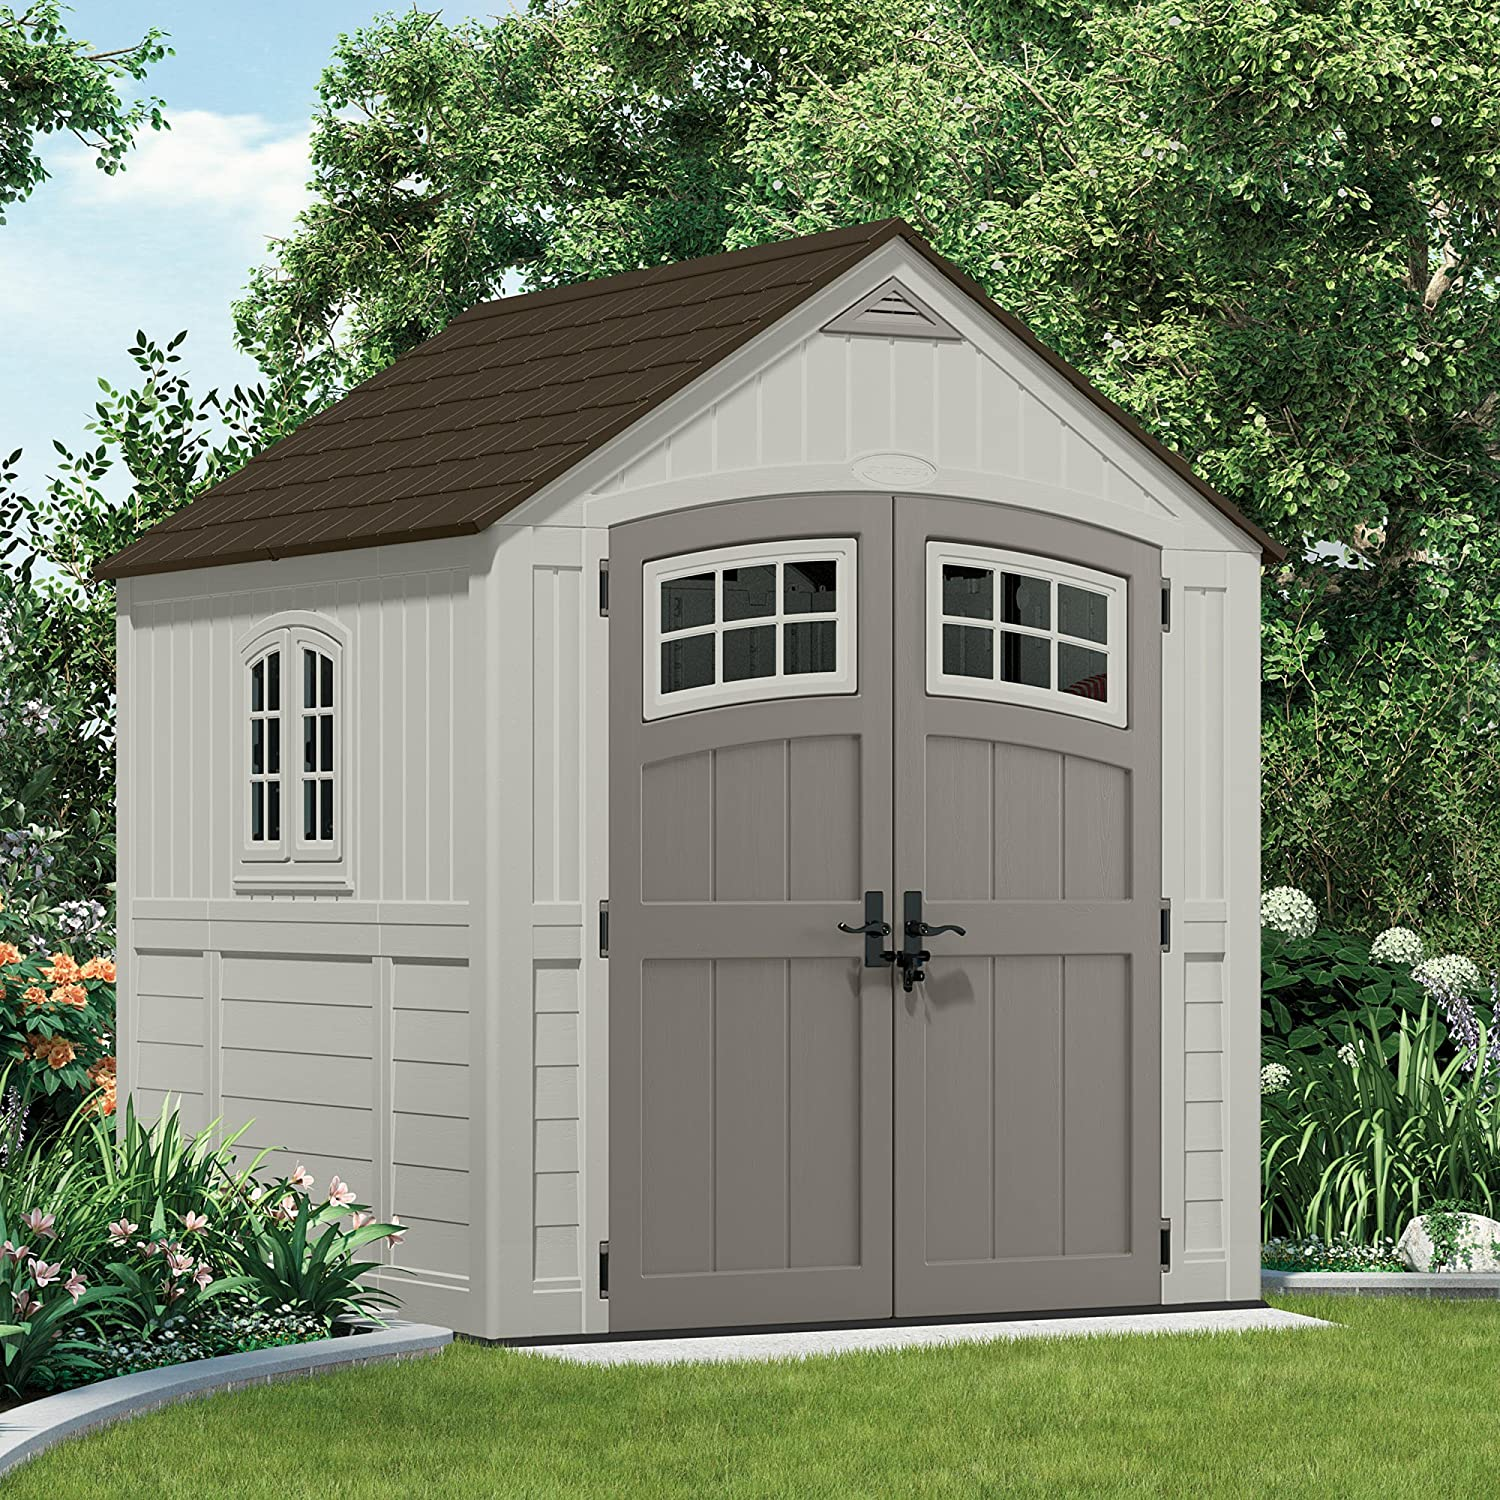 along resin and shop walmart bicycle special sheds with gear lowes ideas accessories large shed sail dk home lid storage depot slide best assembly bike engrossing rubbermaid